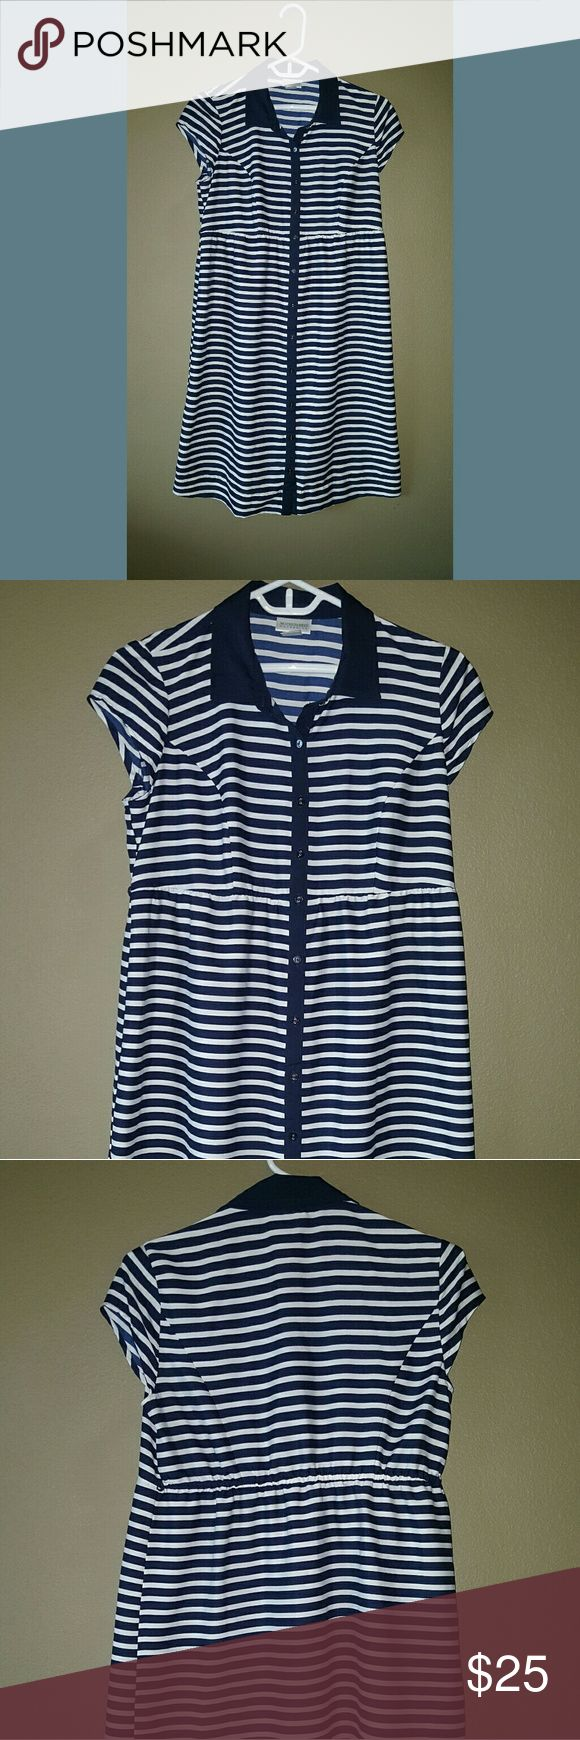 Die besten 20 blue and white maternity dresses ideen auf motherhood maternity motherhood maternity dress blue and white exellent condition size small ombrellifo Choice Image